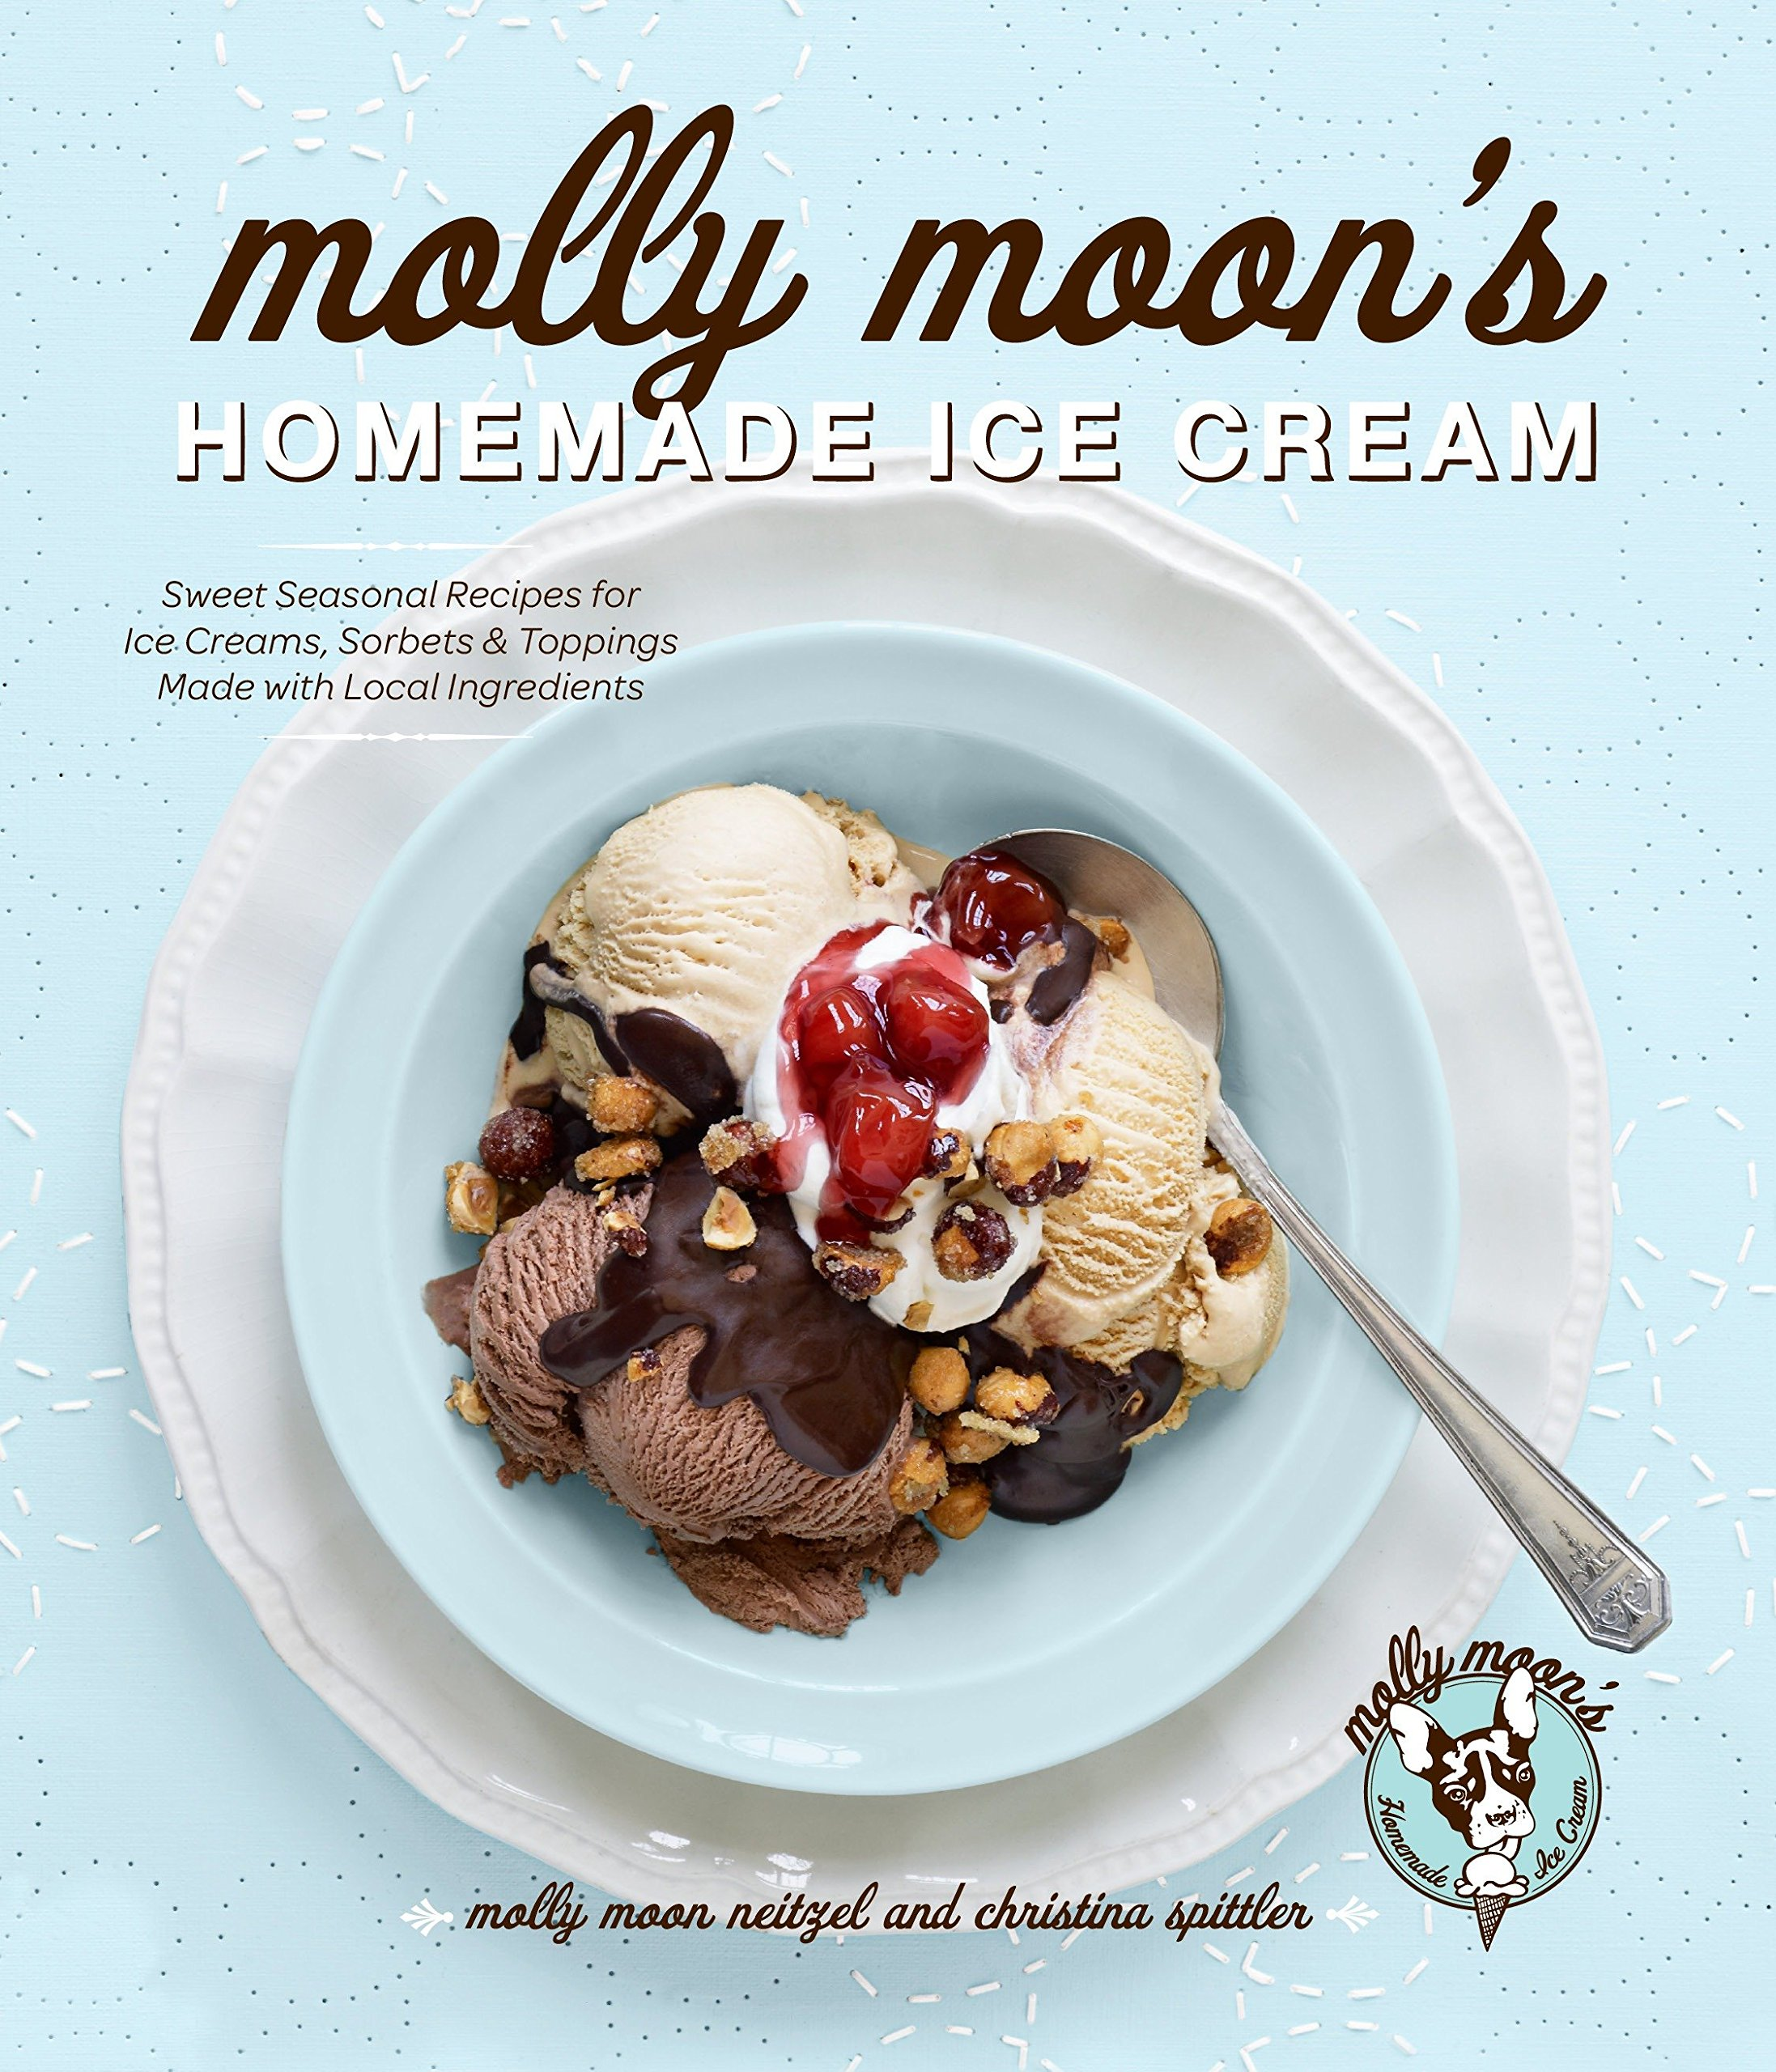 Molly Moon's Homemade Ice Cream: Sweet Seasonal Recipes for Ice Creams, Sorbets, and Toppings Made with Local Ingredients by Sasquatch Books